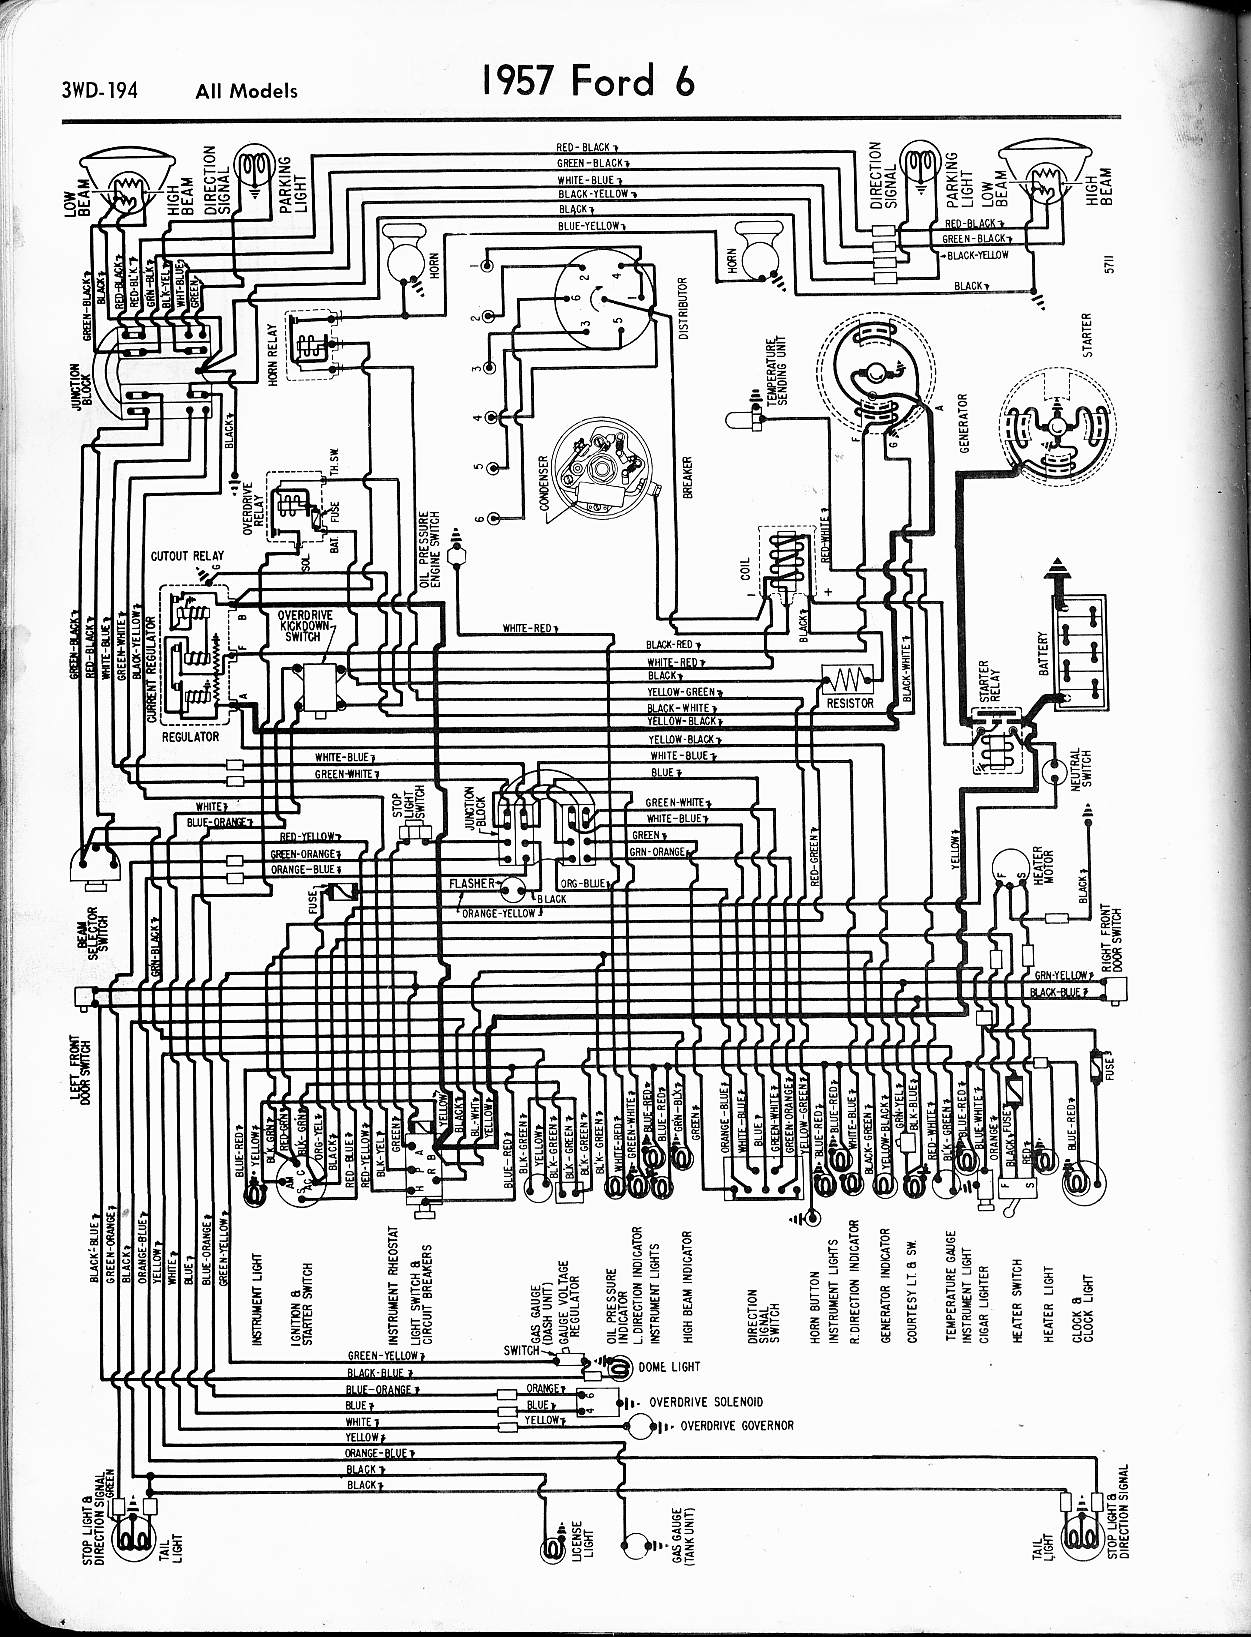 Headlight Switch Wiring Diagram For 1992 Ford Thunderbird Archive F 350 1954 Electronic Diagrams Rh Ore House Co Uk